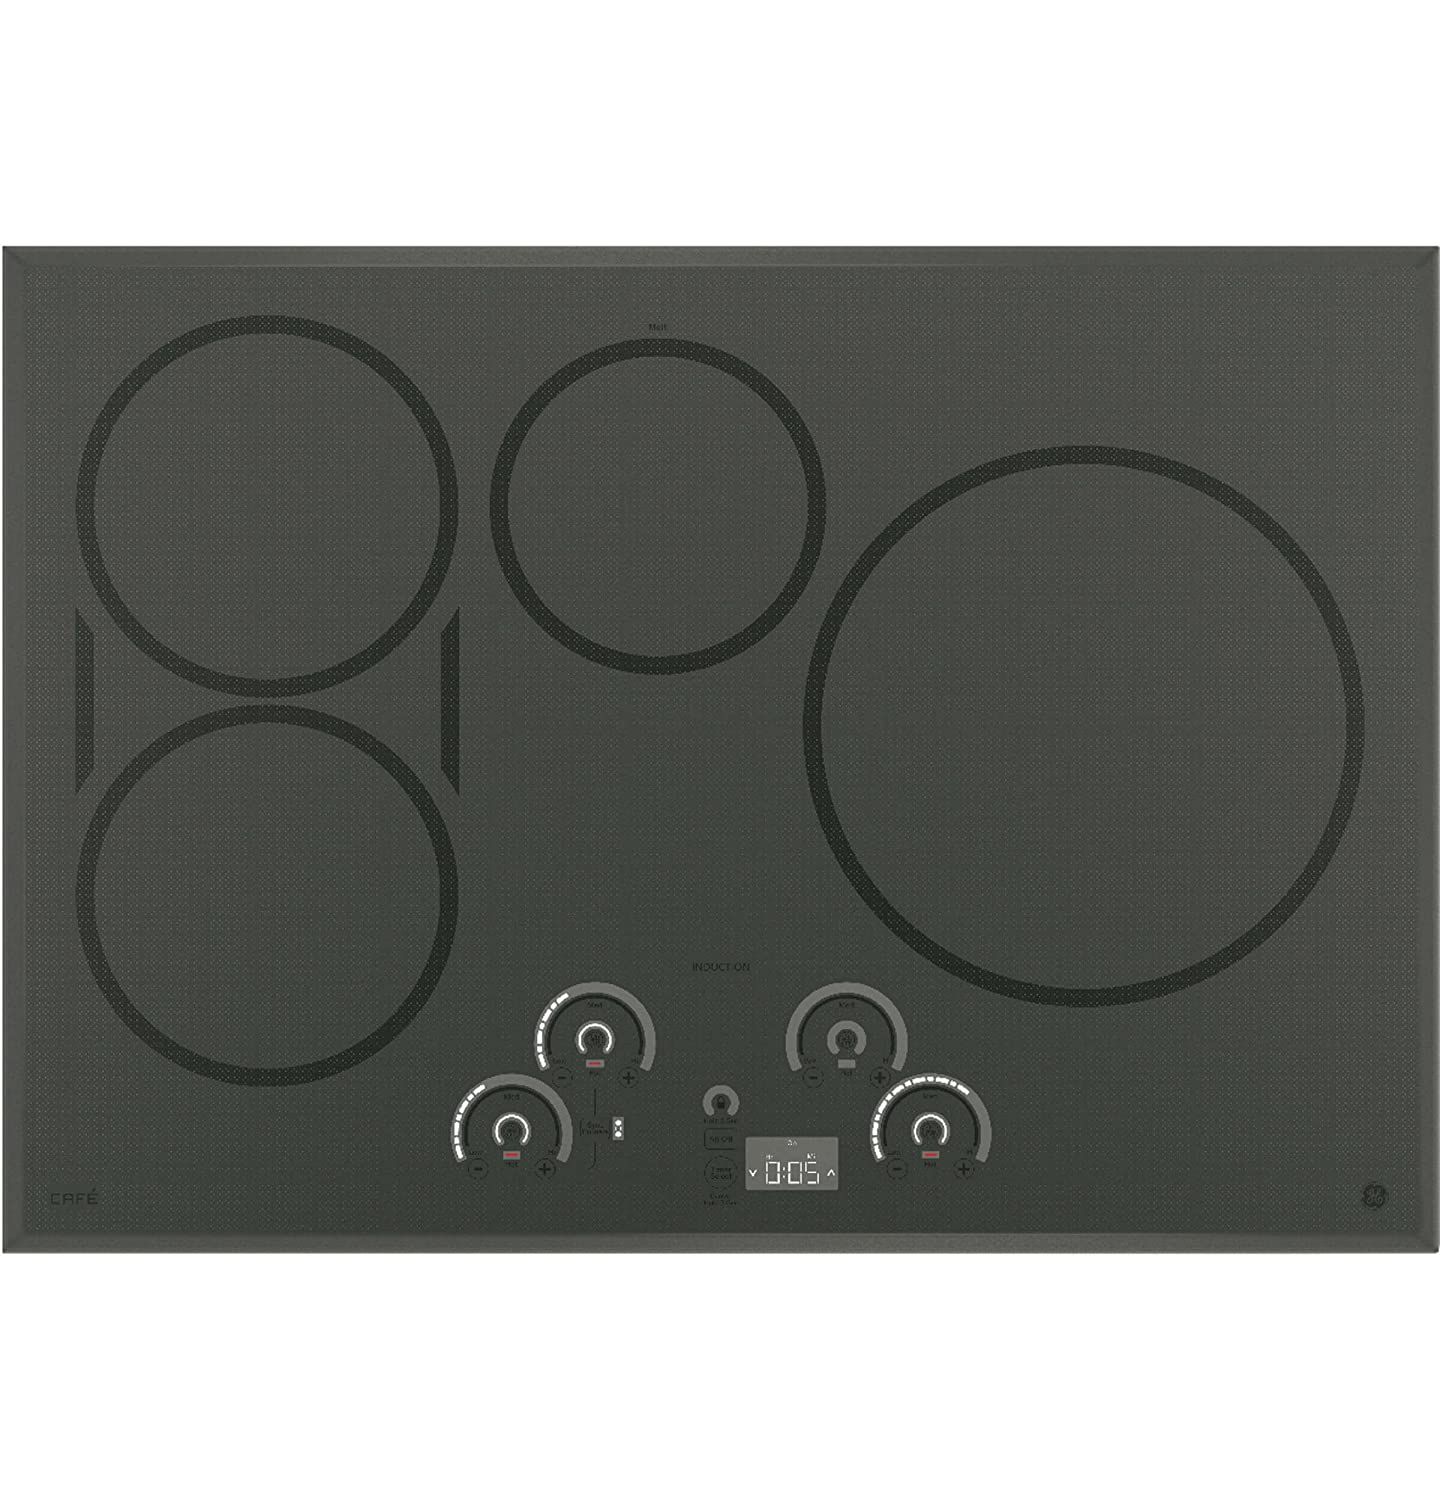 GE Cafe 30' Built-in Induction Cooktop Flagstone Gray CHP9530SJSS